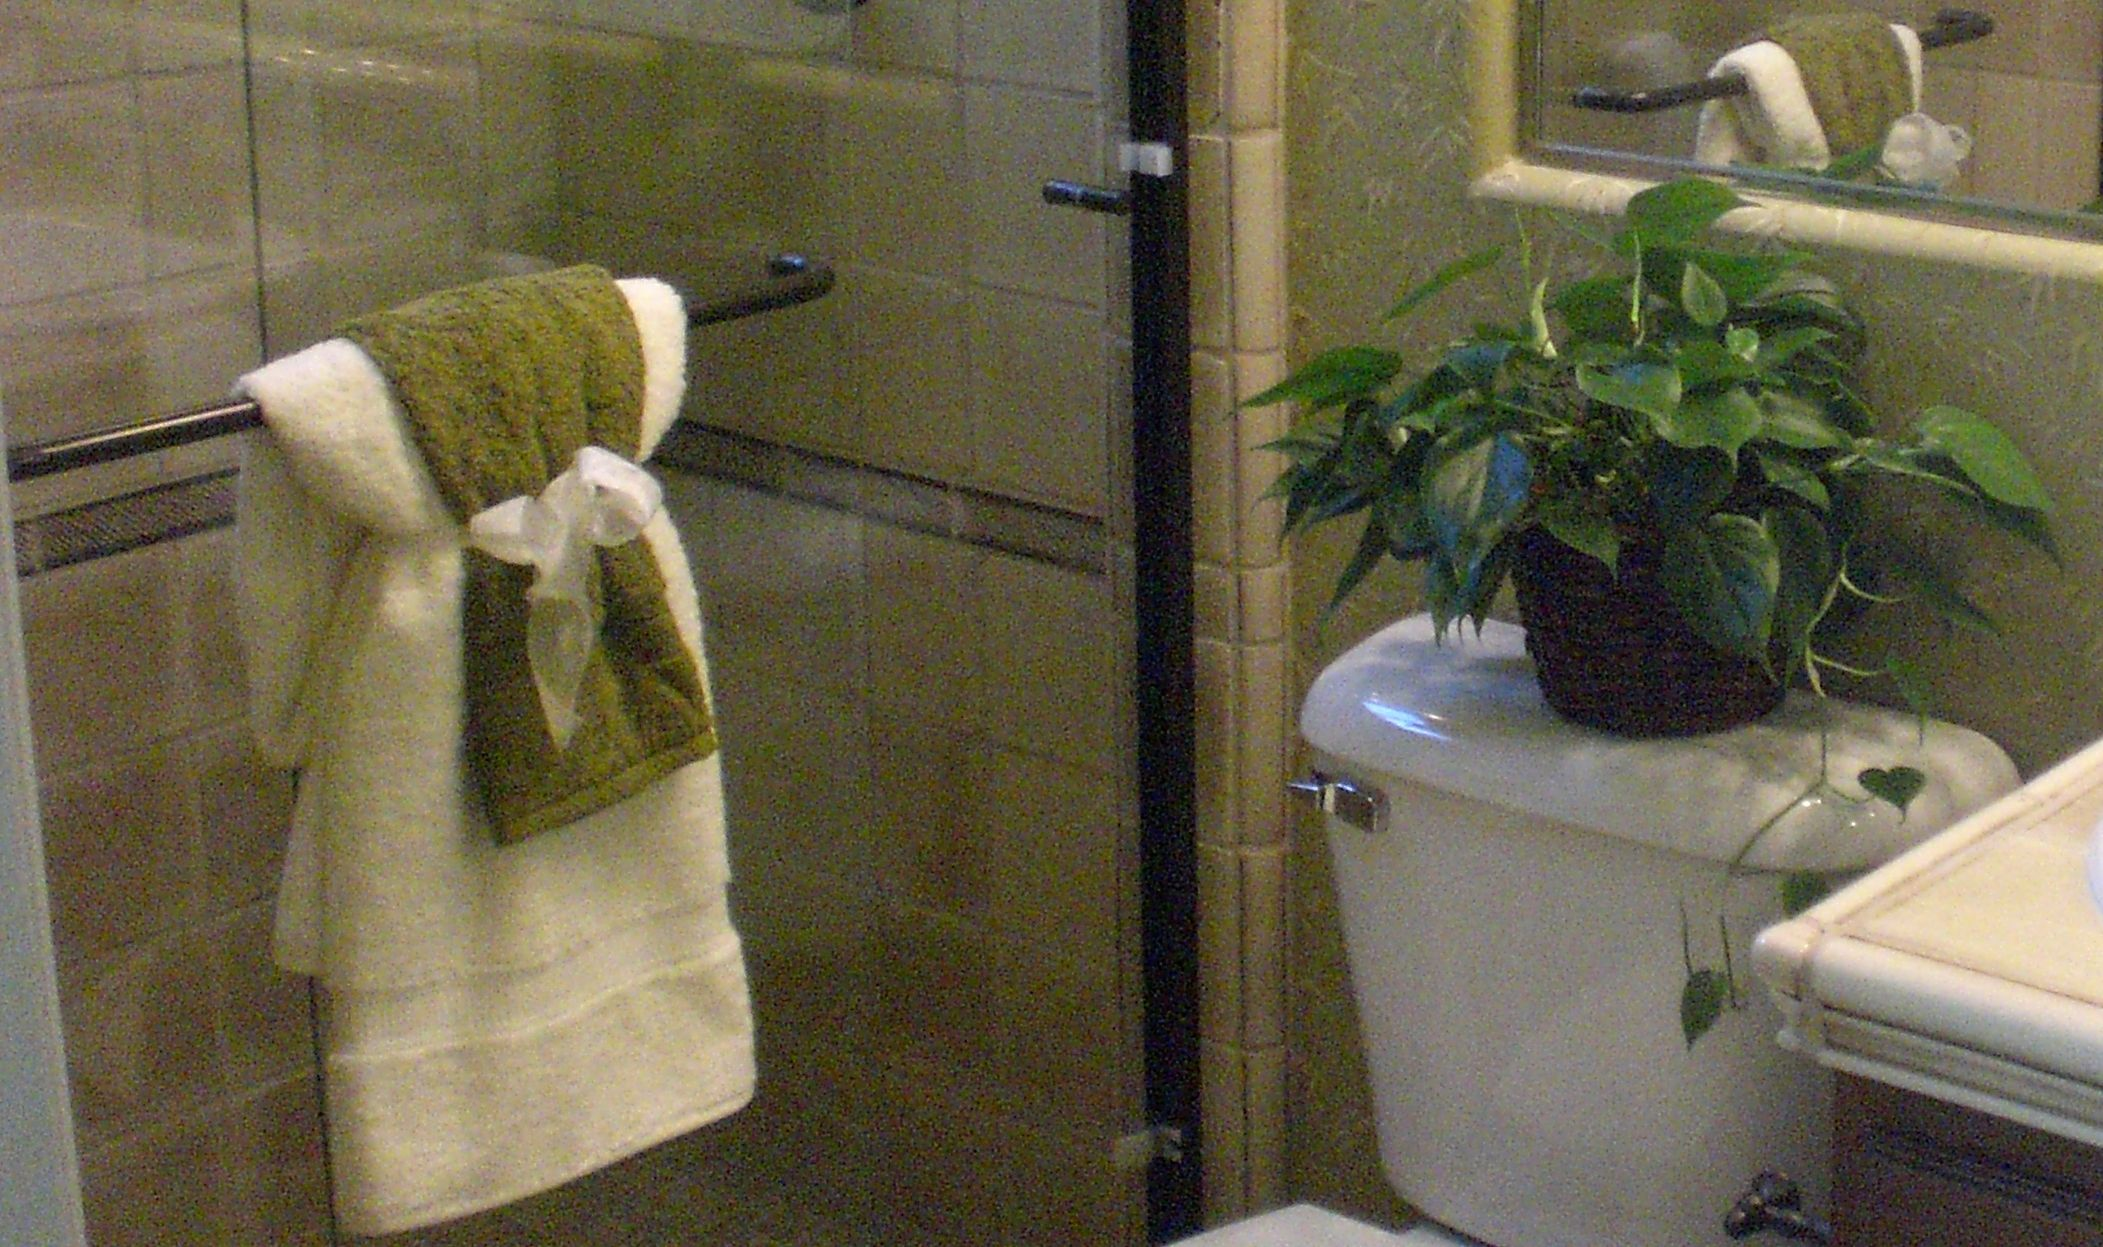 Towel Decorations Everyday Items Towels And Bathroom - Decorative bath towel sets for small bathroom ideas